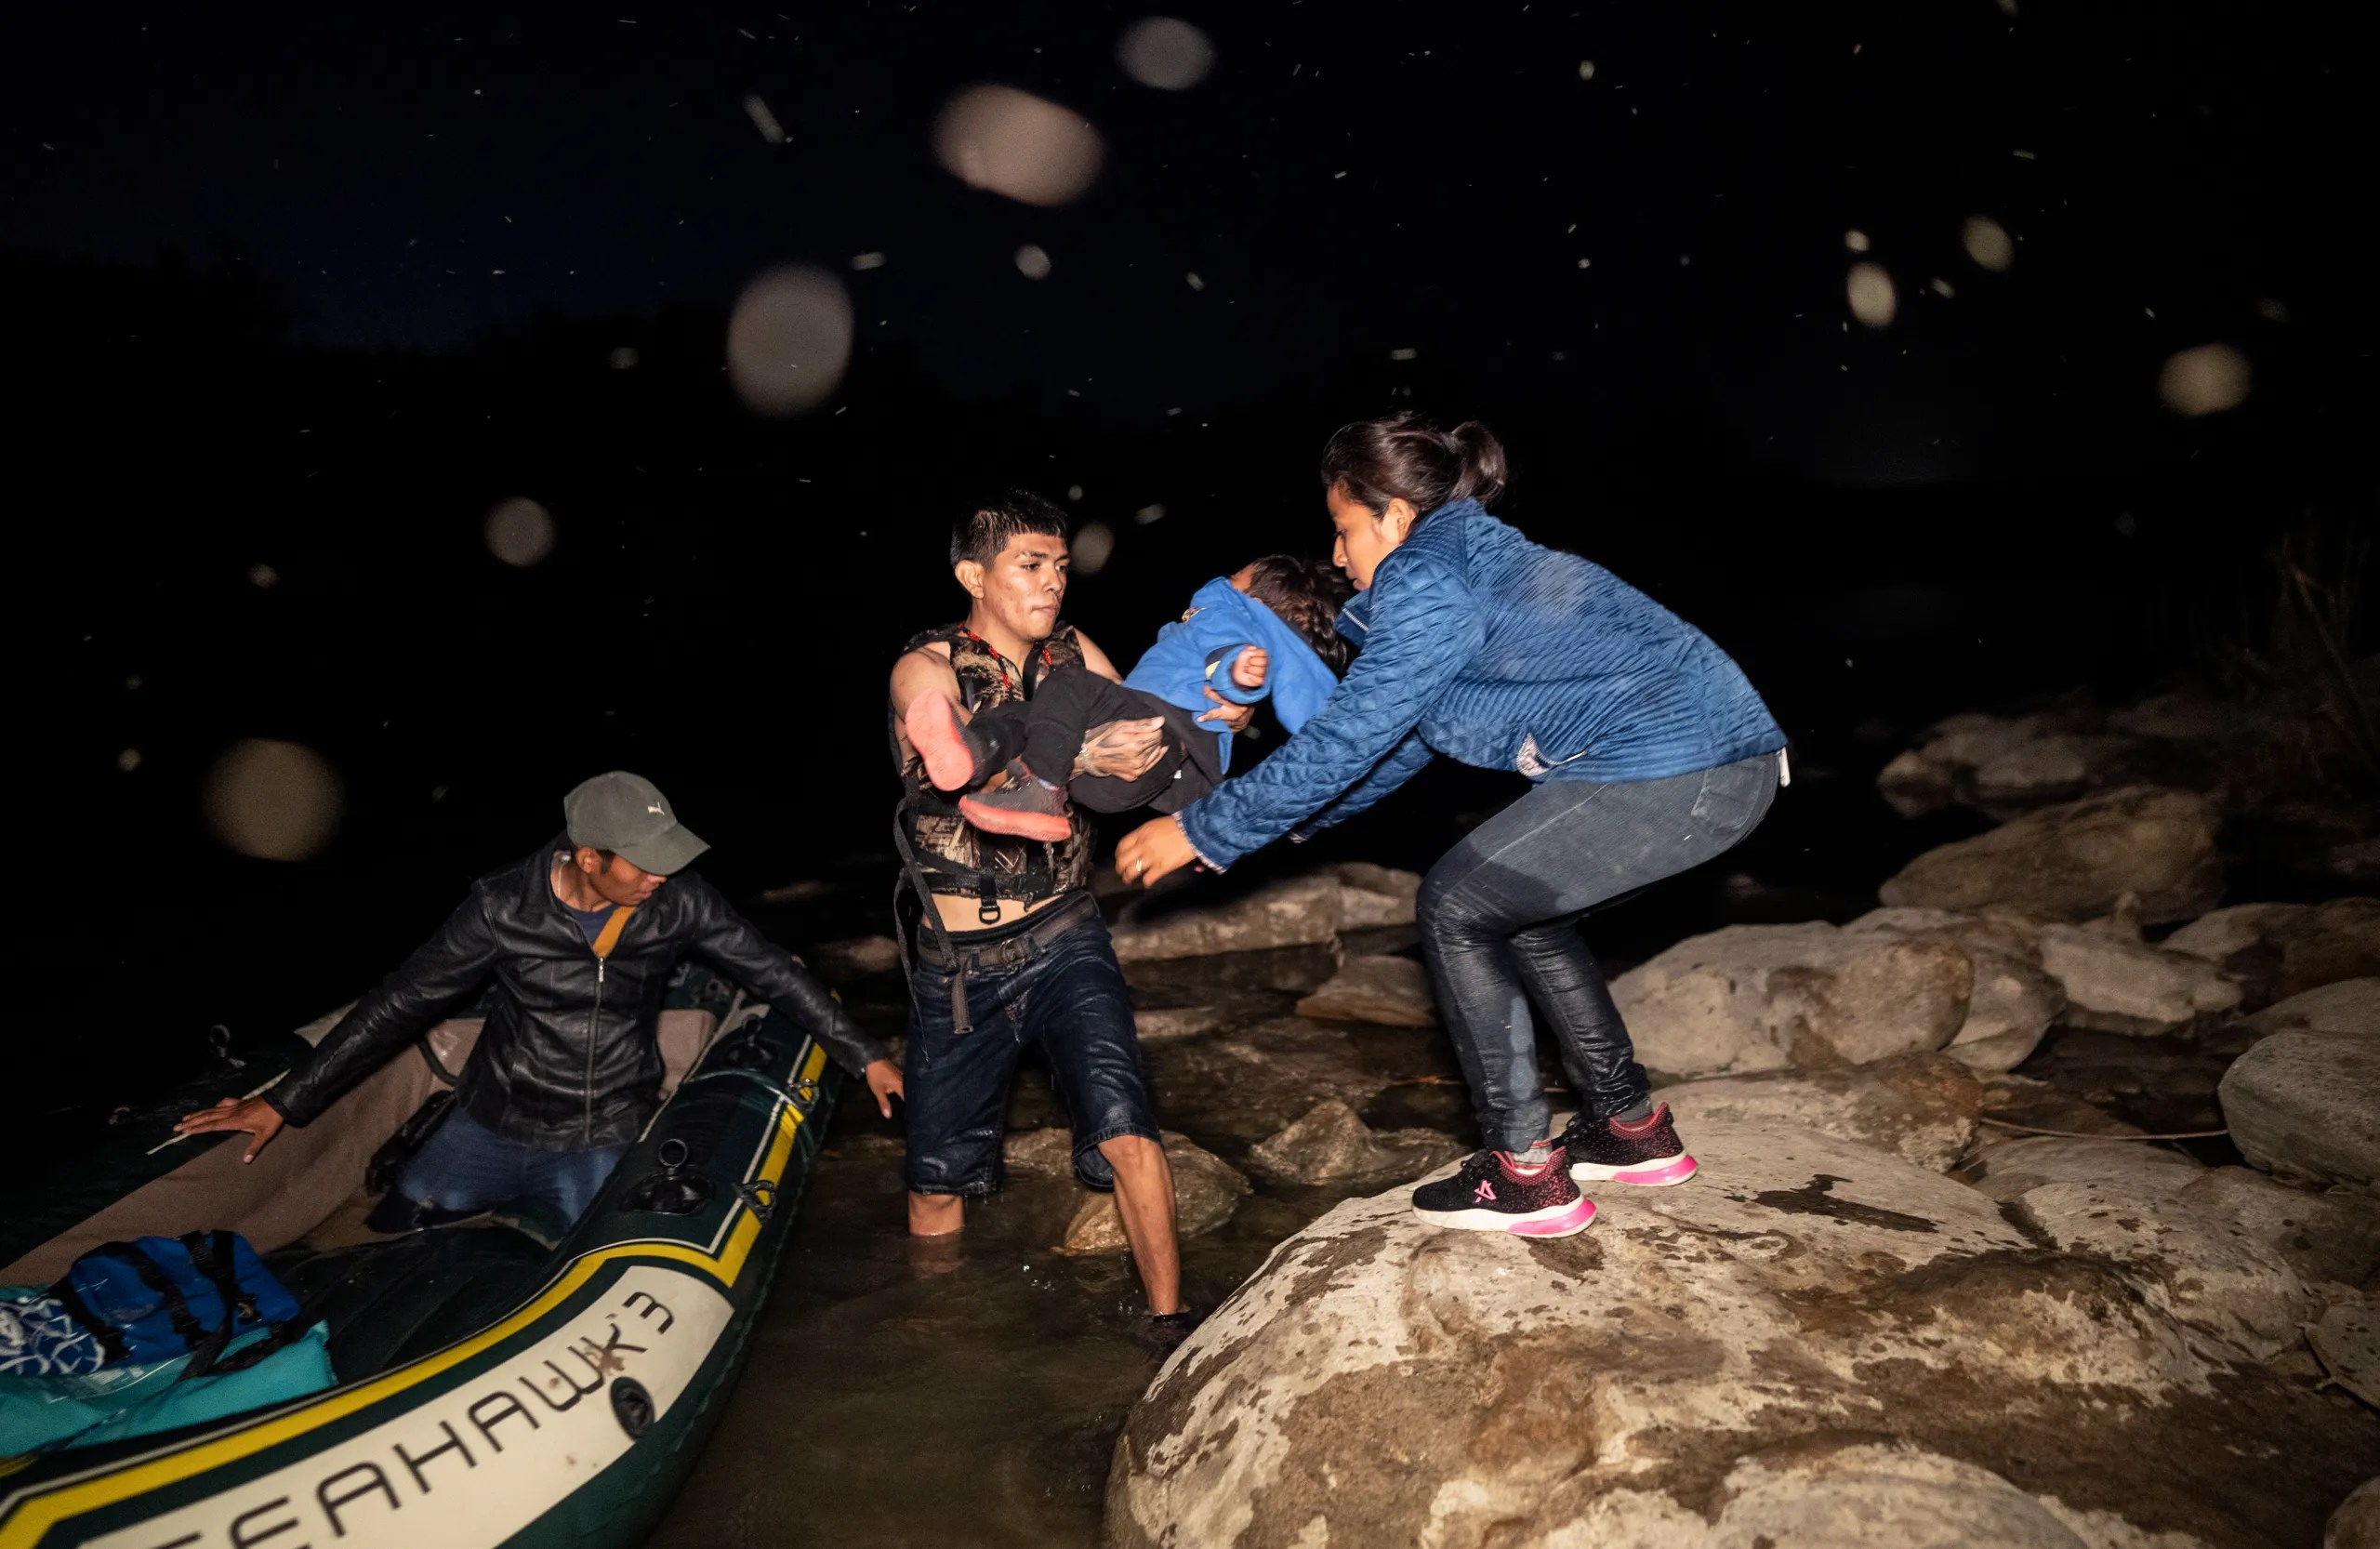 A man standing in water near a boat hands a child to a woman on land.